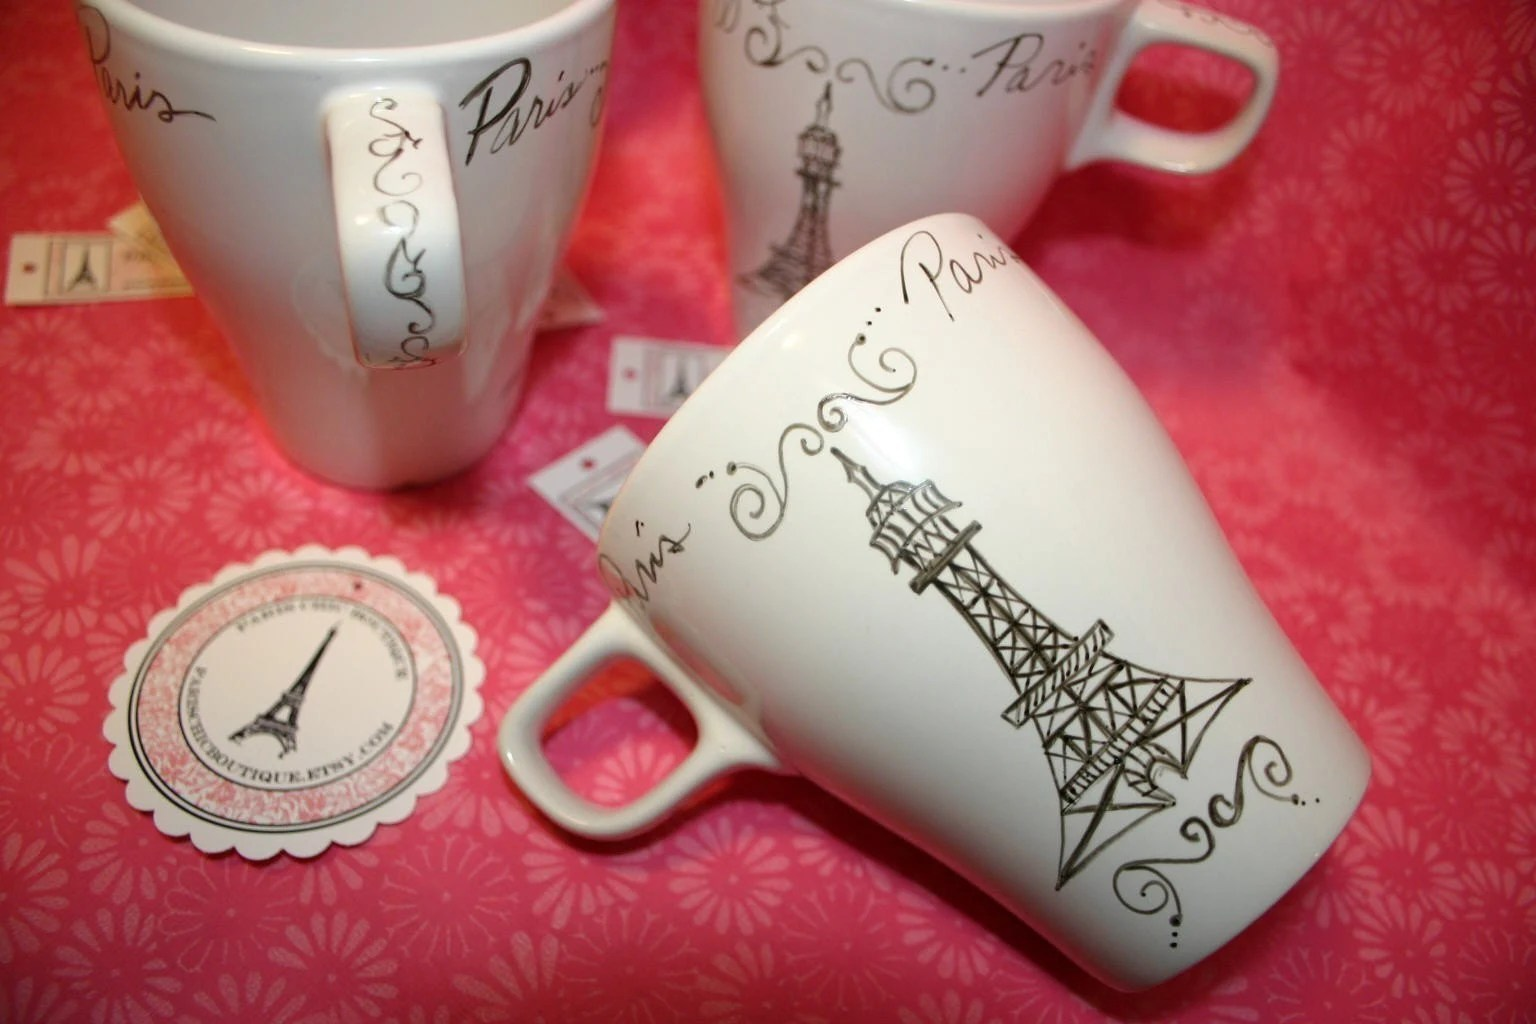 SALE - Paris Cafe Cups Mugs Set of 4 with Eiffel Tower in French